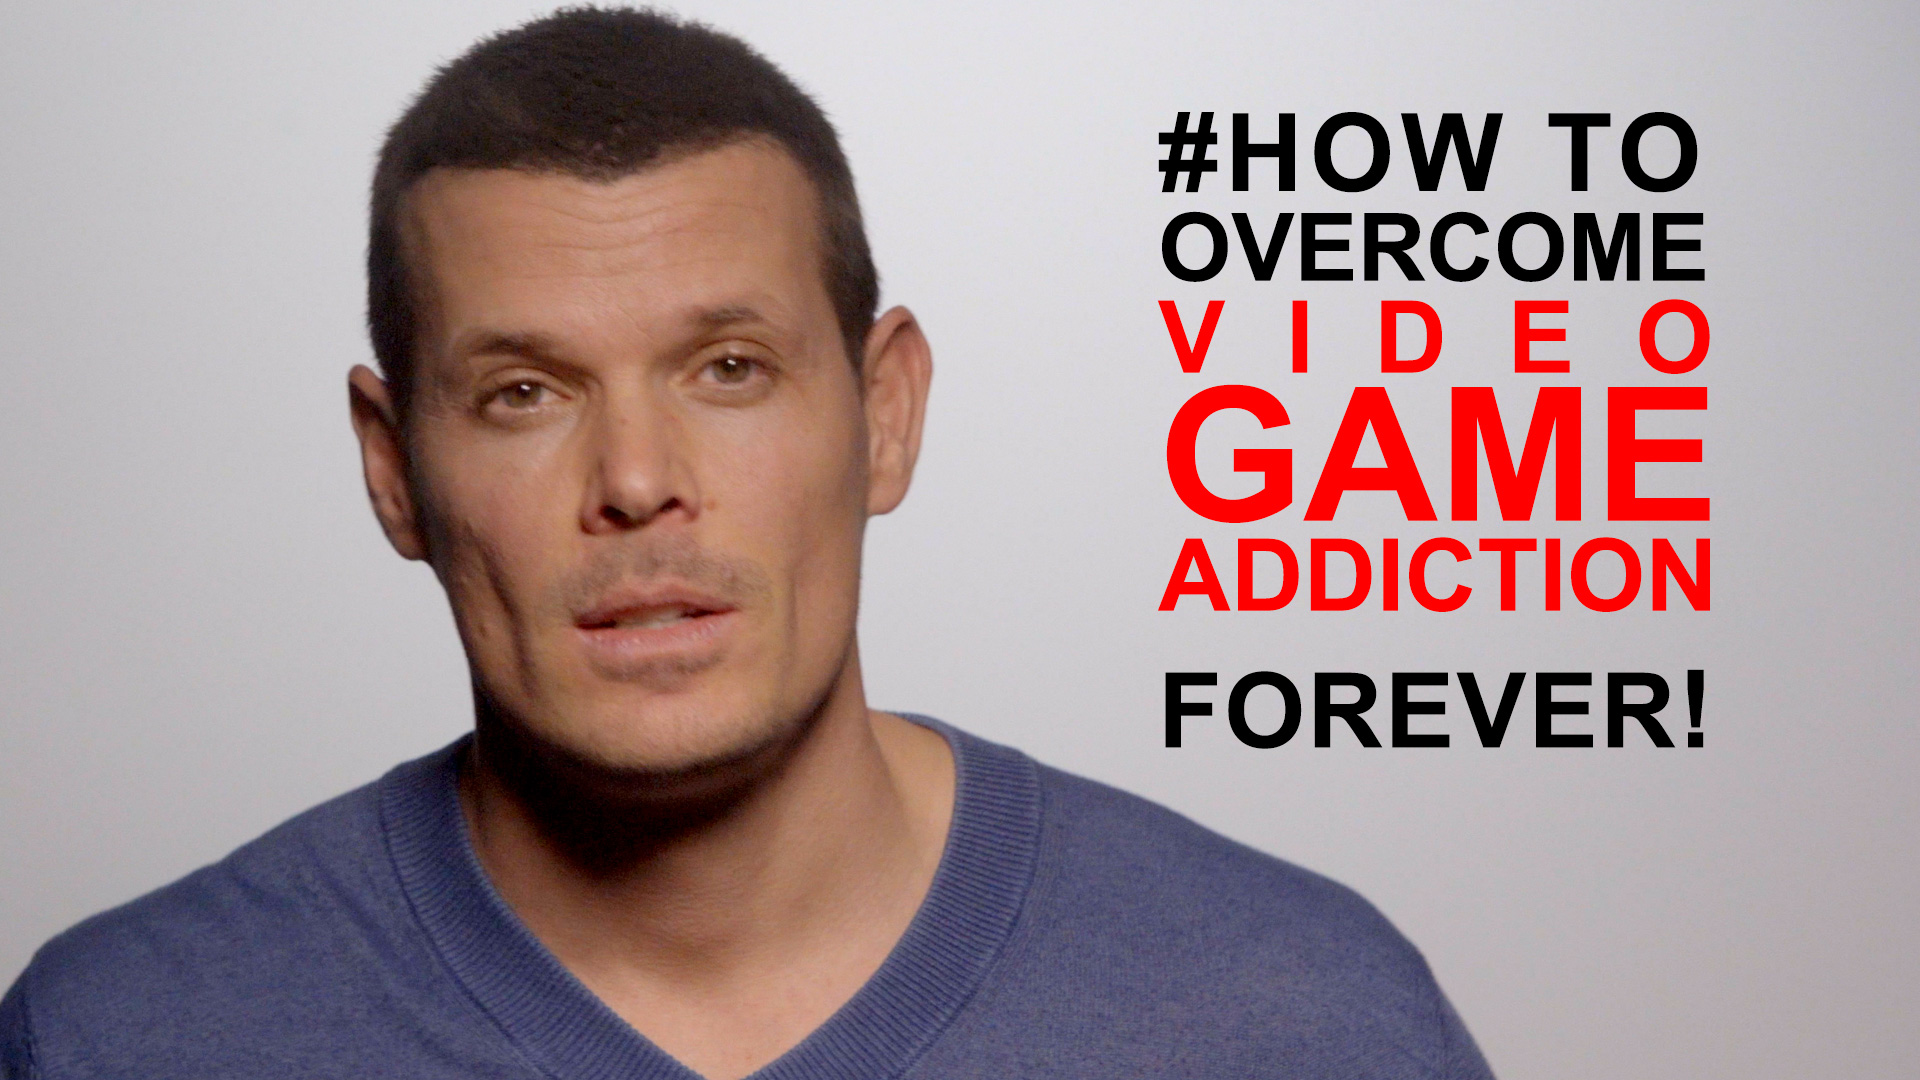 Video game addiction: how to overcome it FOREVER: